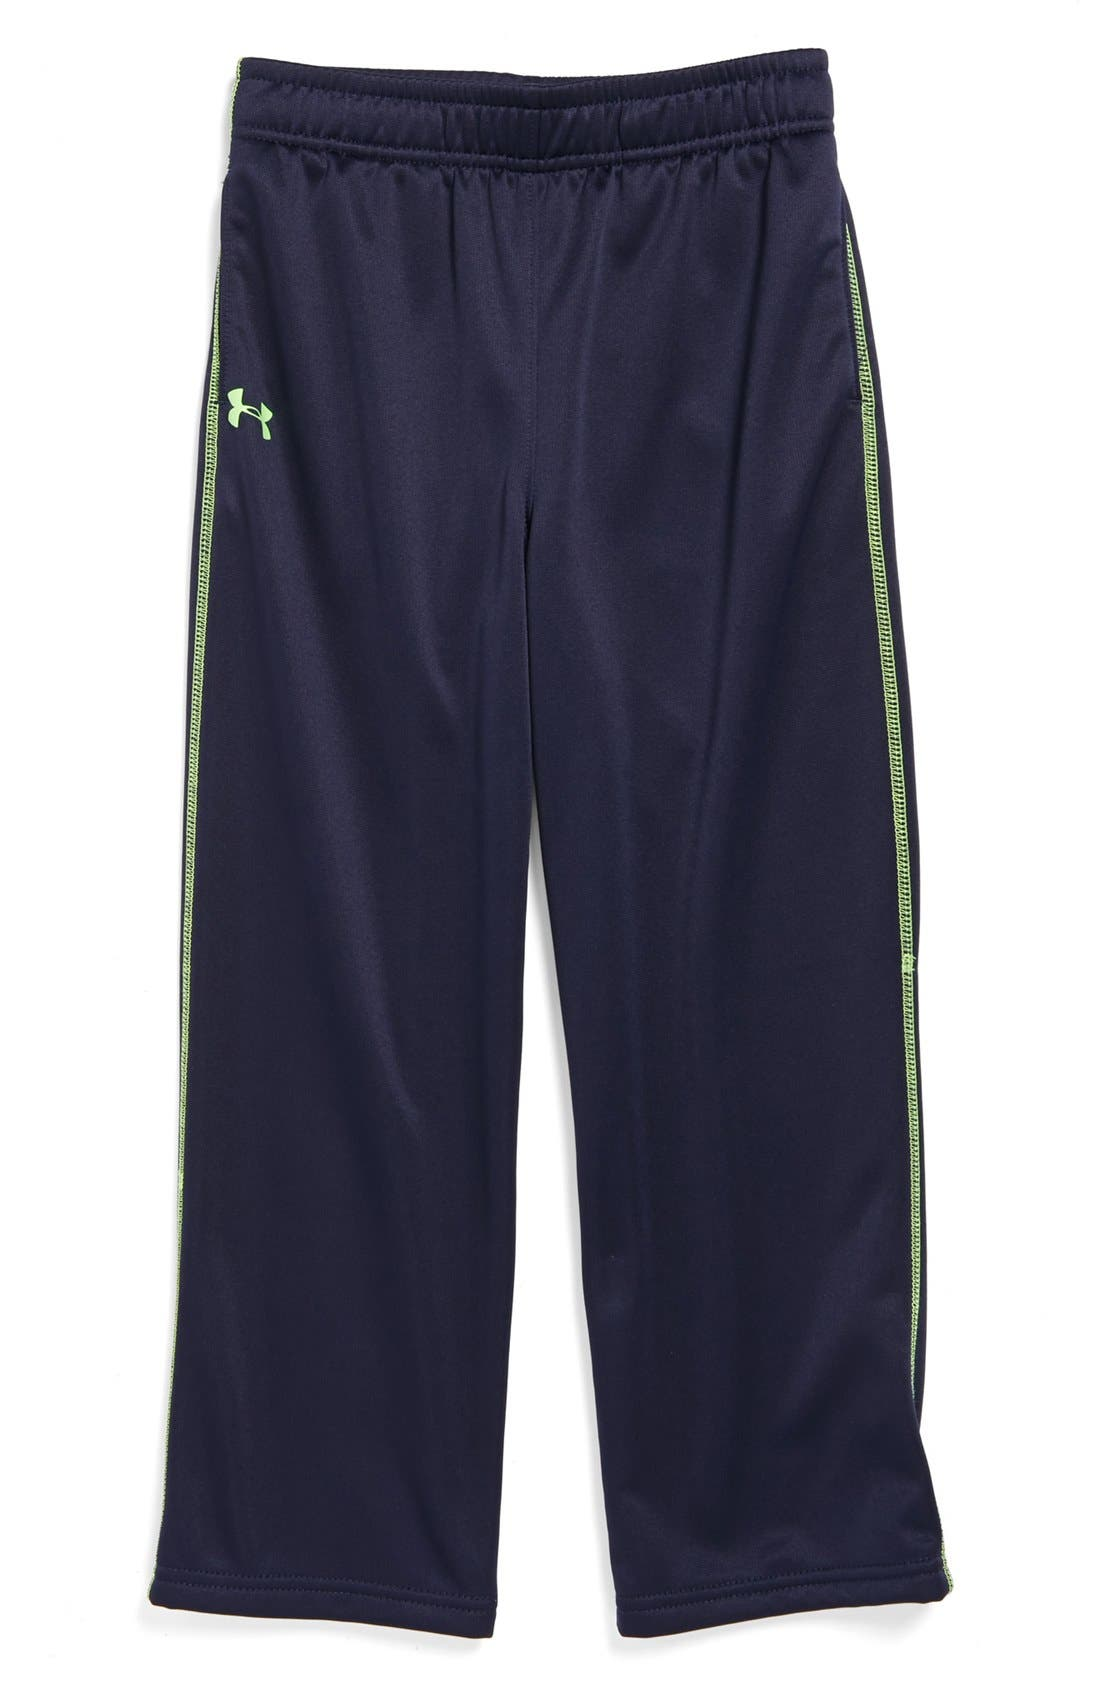 Main Image - Under Armour Fleece Lined AllSeasonGear® Pants (Little Boys)